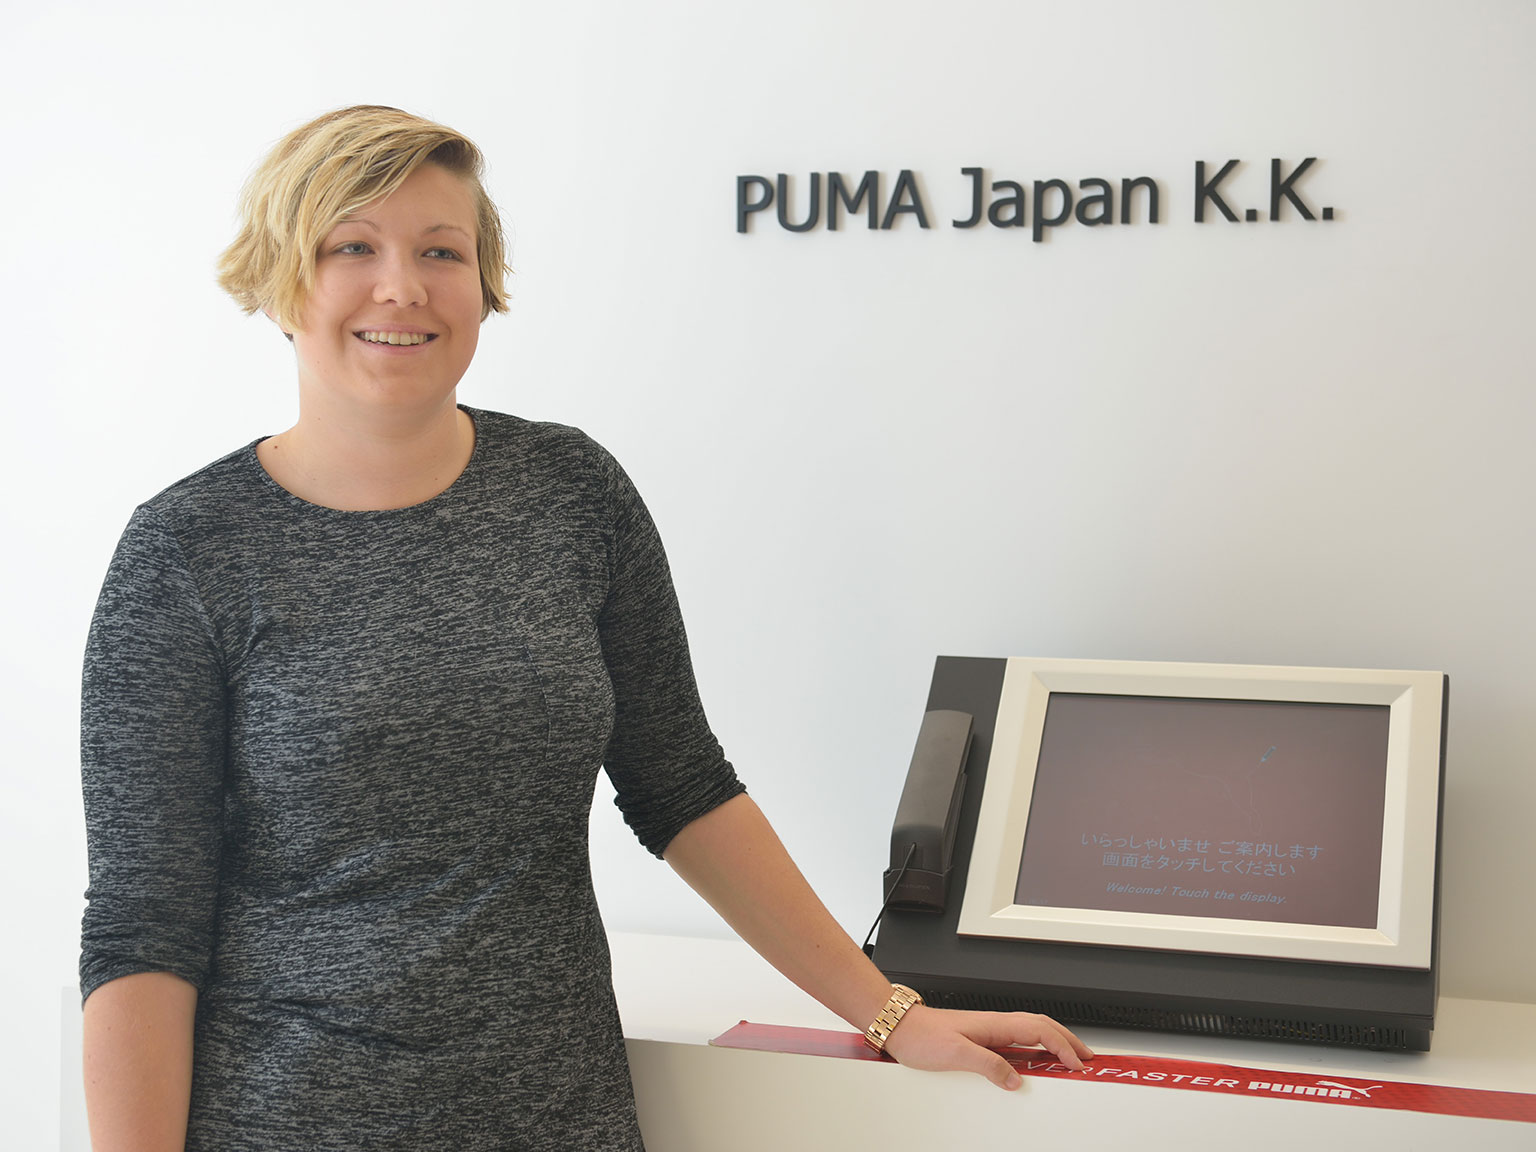 Anna Schneewind in one of Japan's PUMA offices